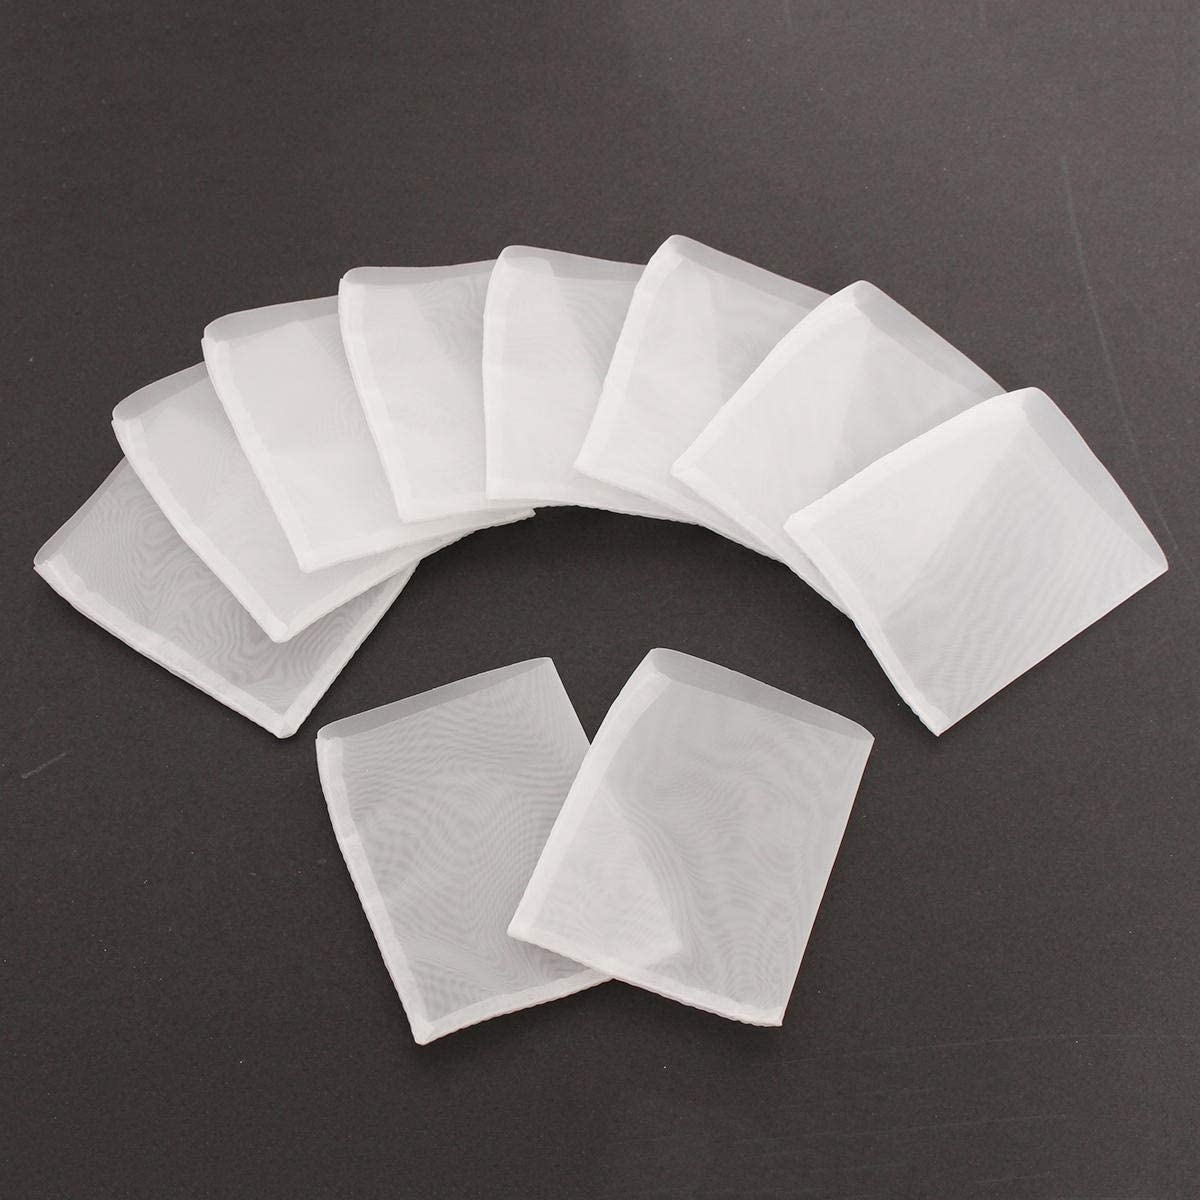 Ctghgyiki 90u 10pcs Rosin Extraction Press Heat Filter Bags Nylon White 63.5 x 76mm Mesh